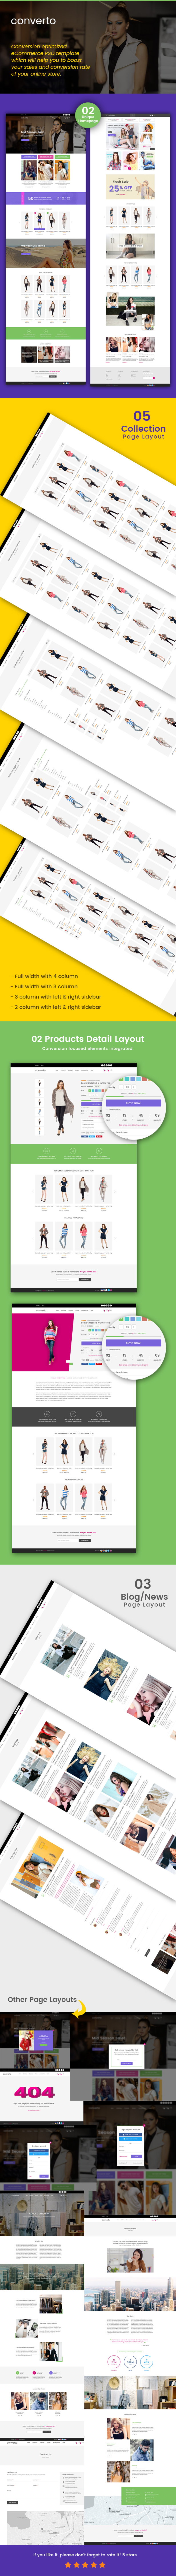 Converto - Conversion Optimized eCommerce PSD Template - 1